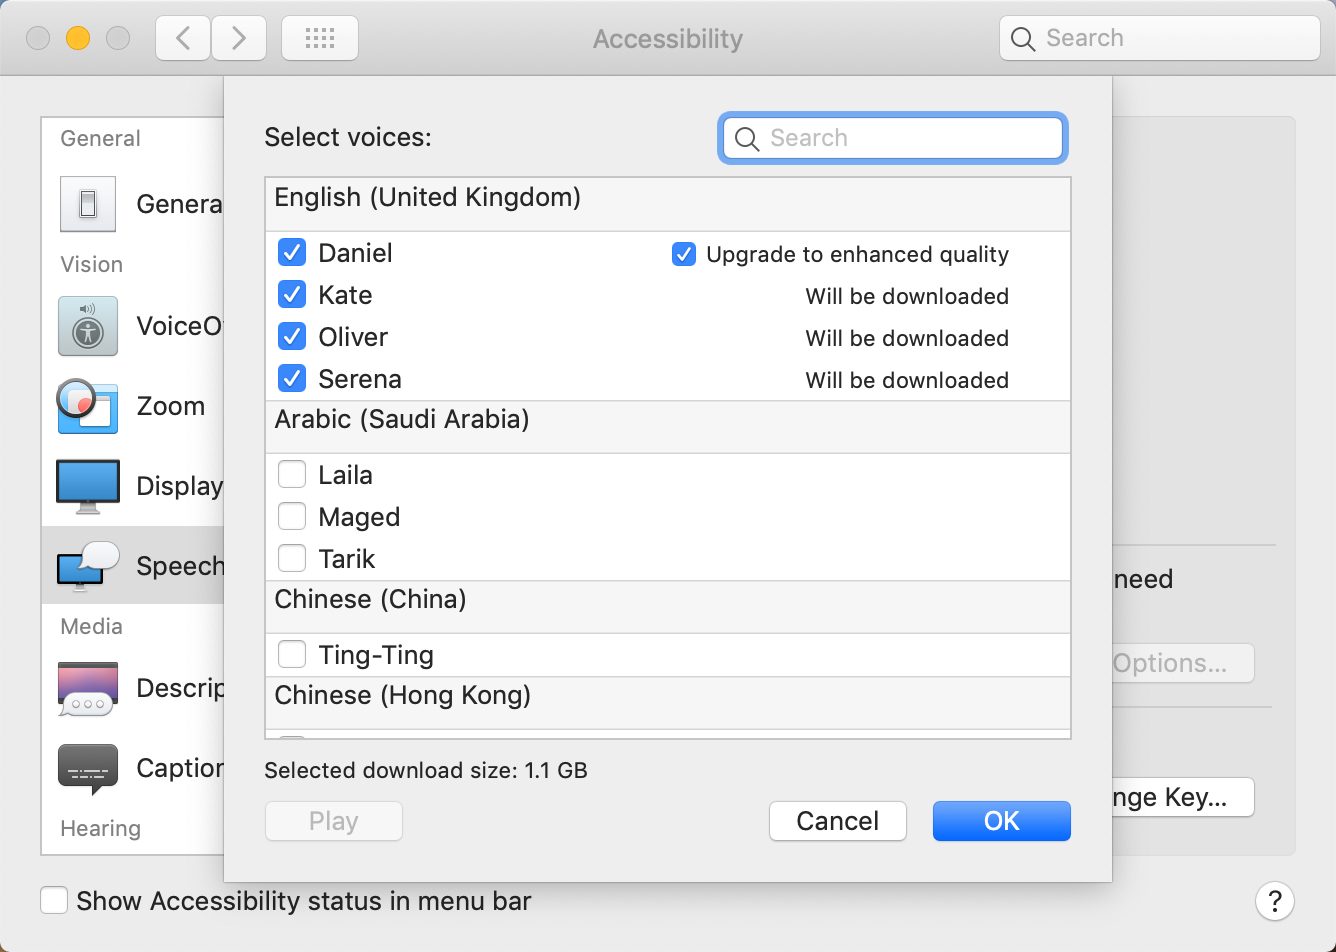 Choose the voices to download for the text-to-speech feature on a Mac